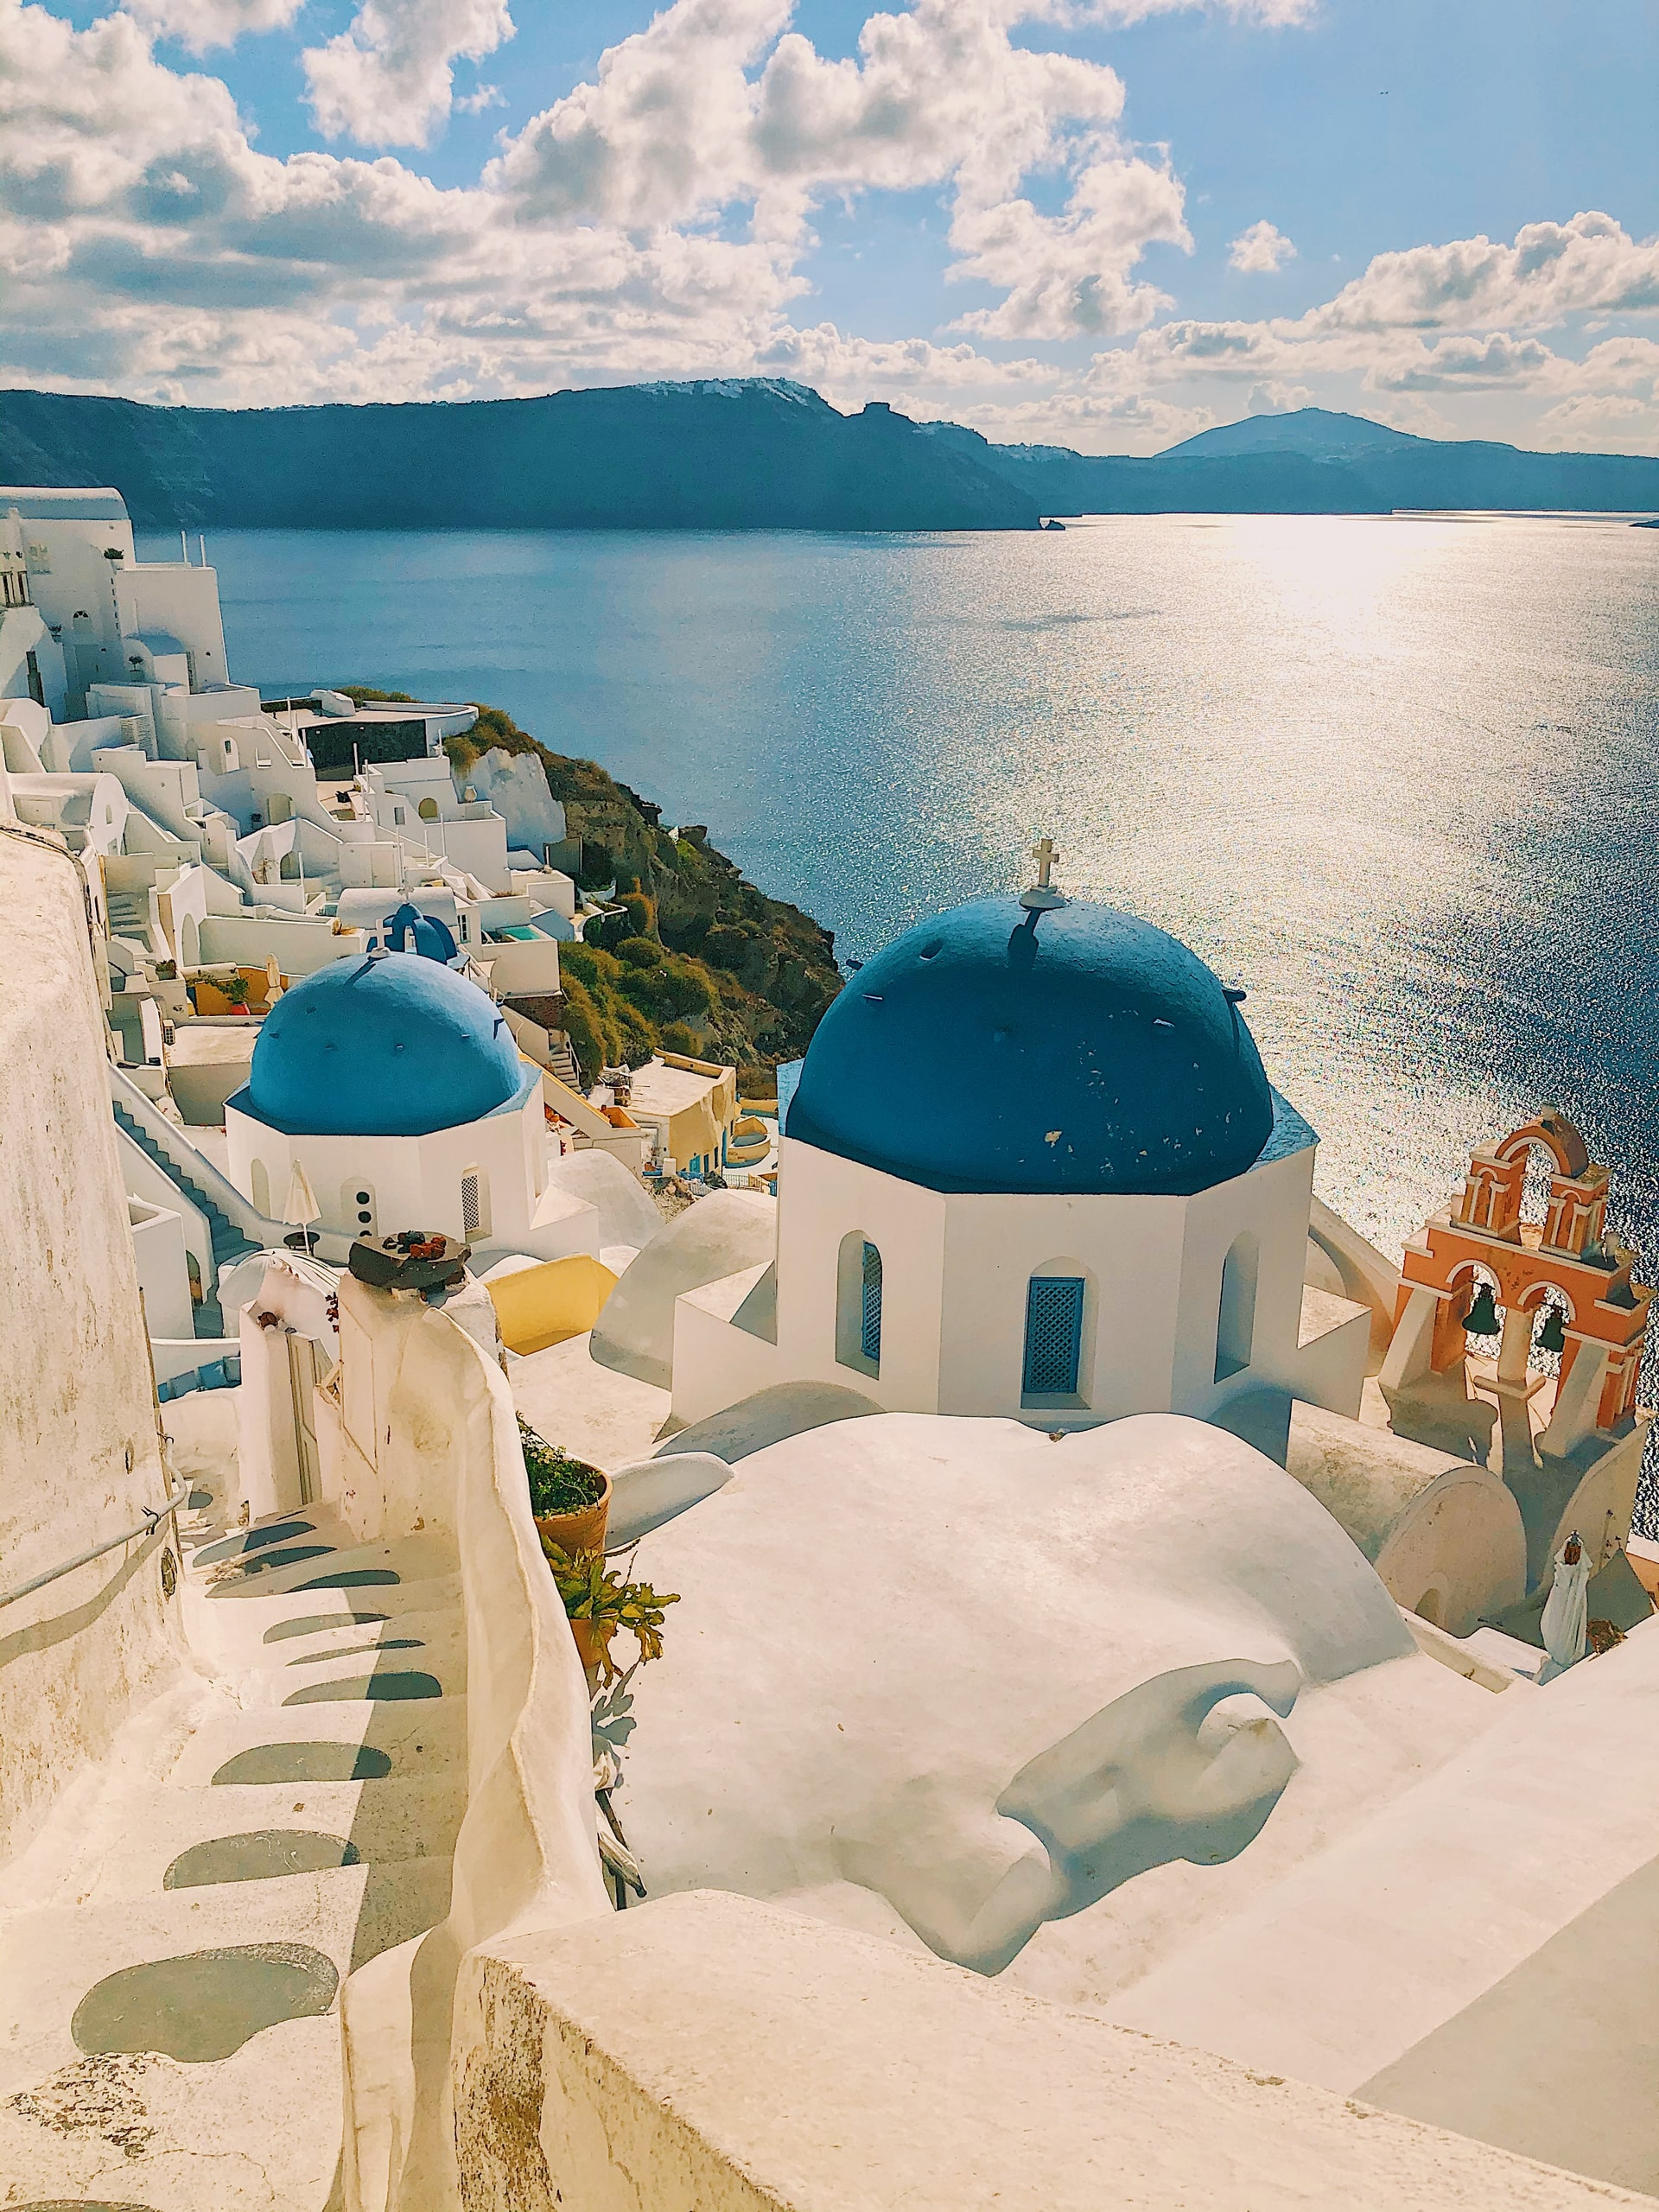 Greek islands self-guided tours